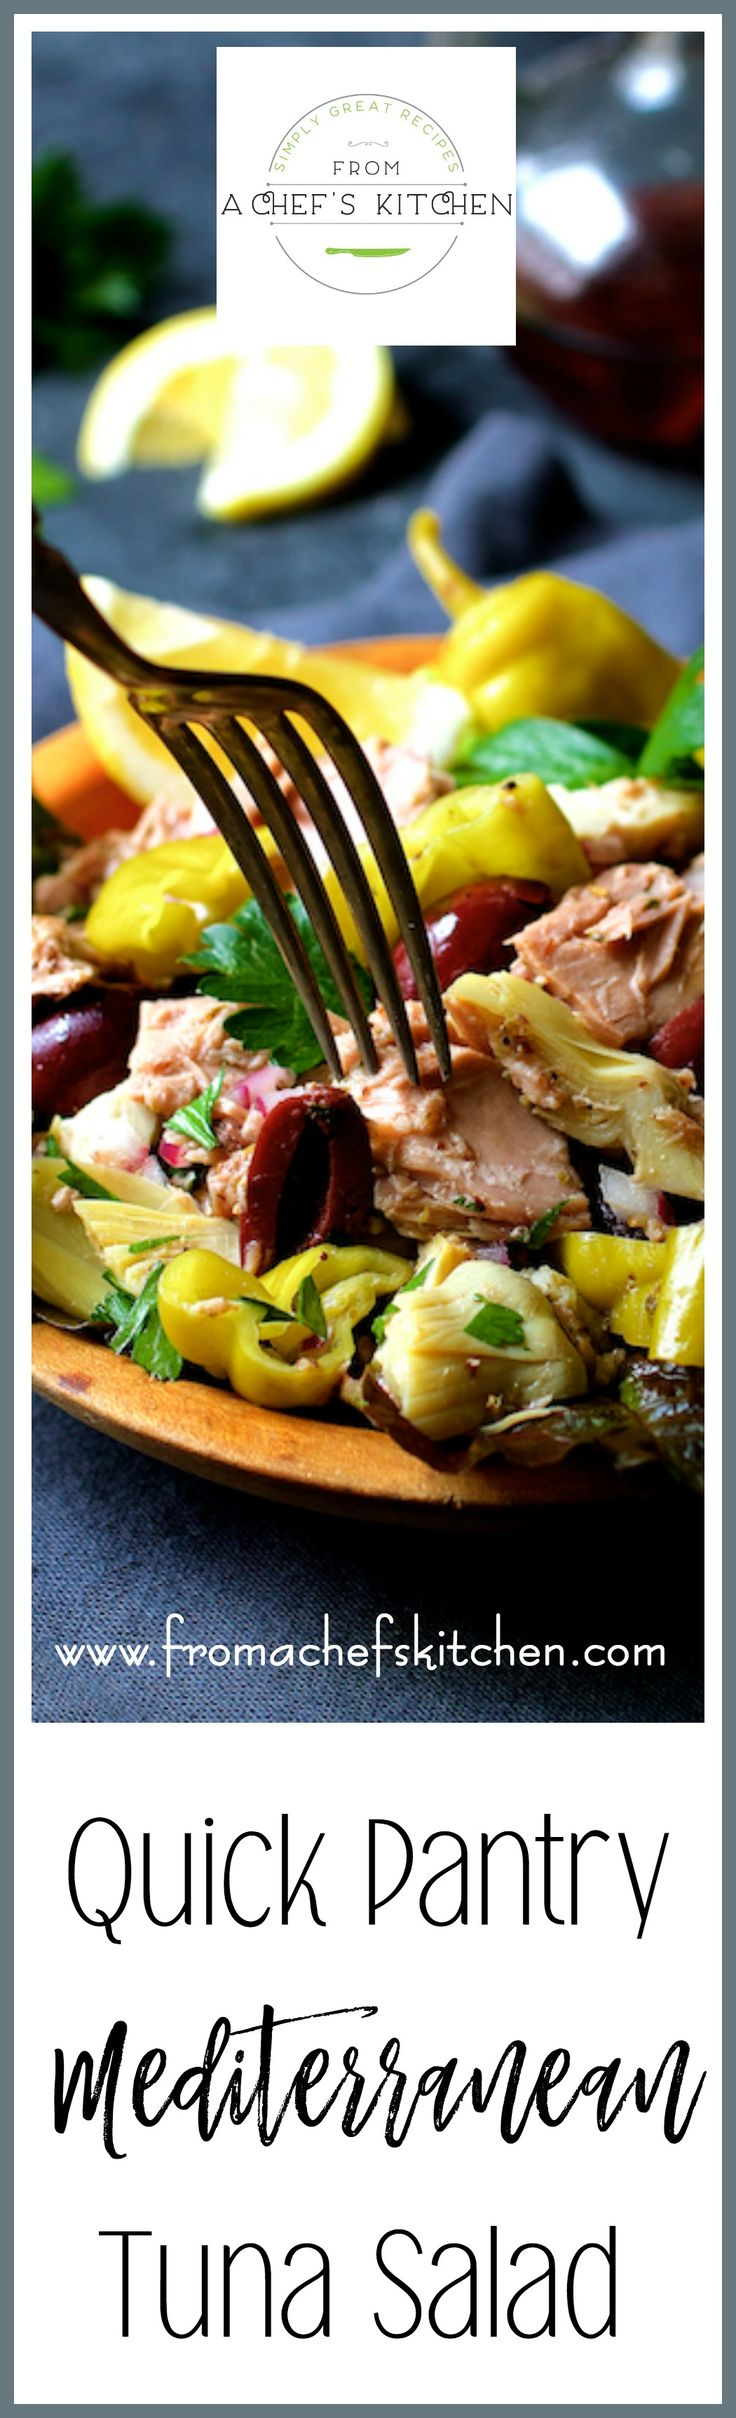 17 Best images about FROM A CHEF'S KITCHEN BLOG PINS on Pinterest ...